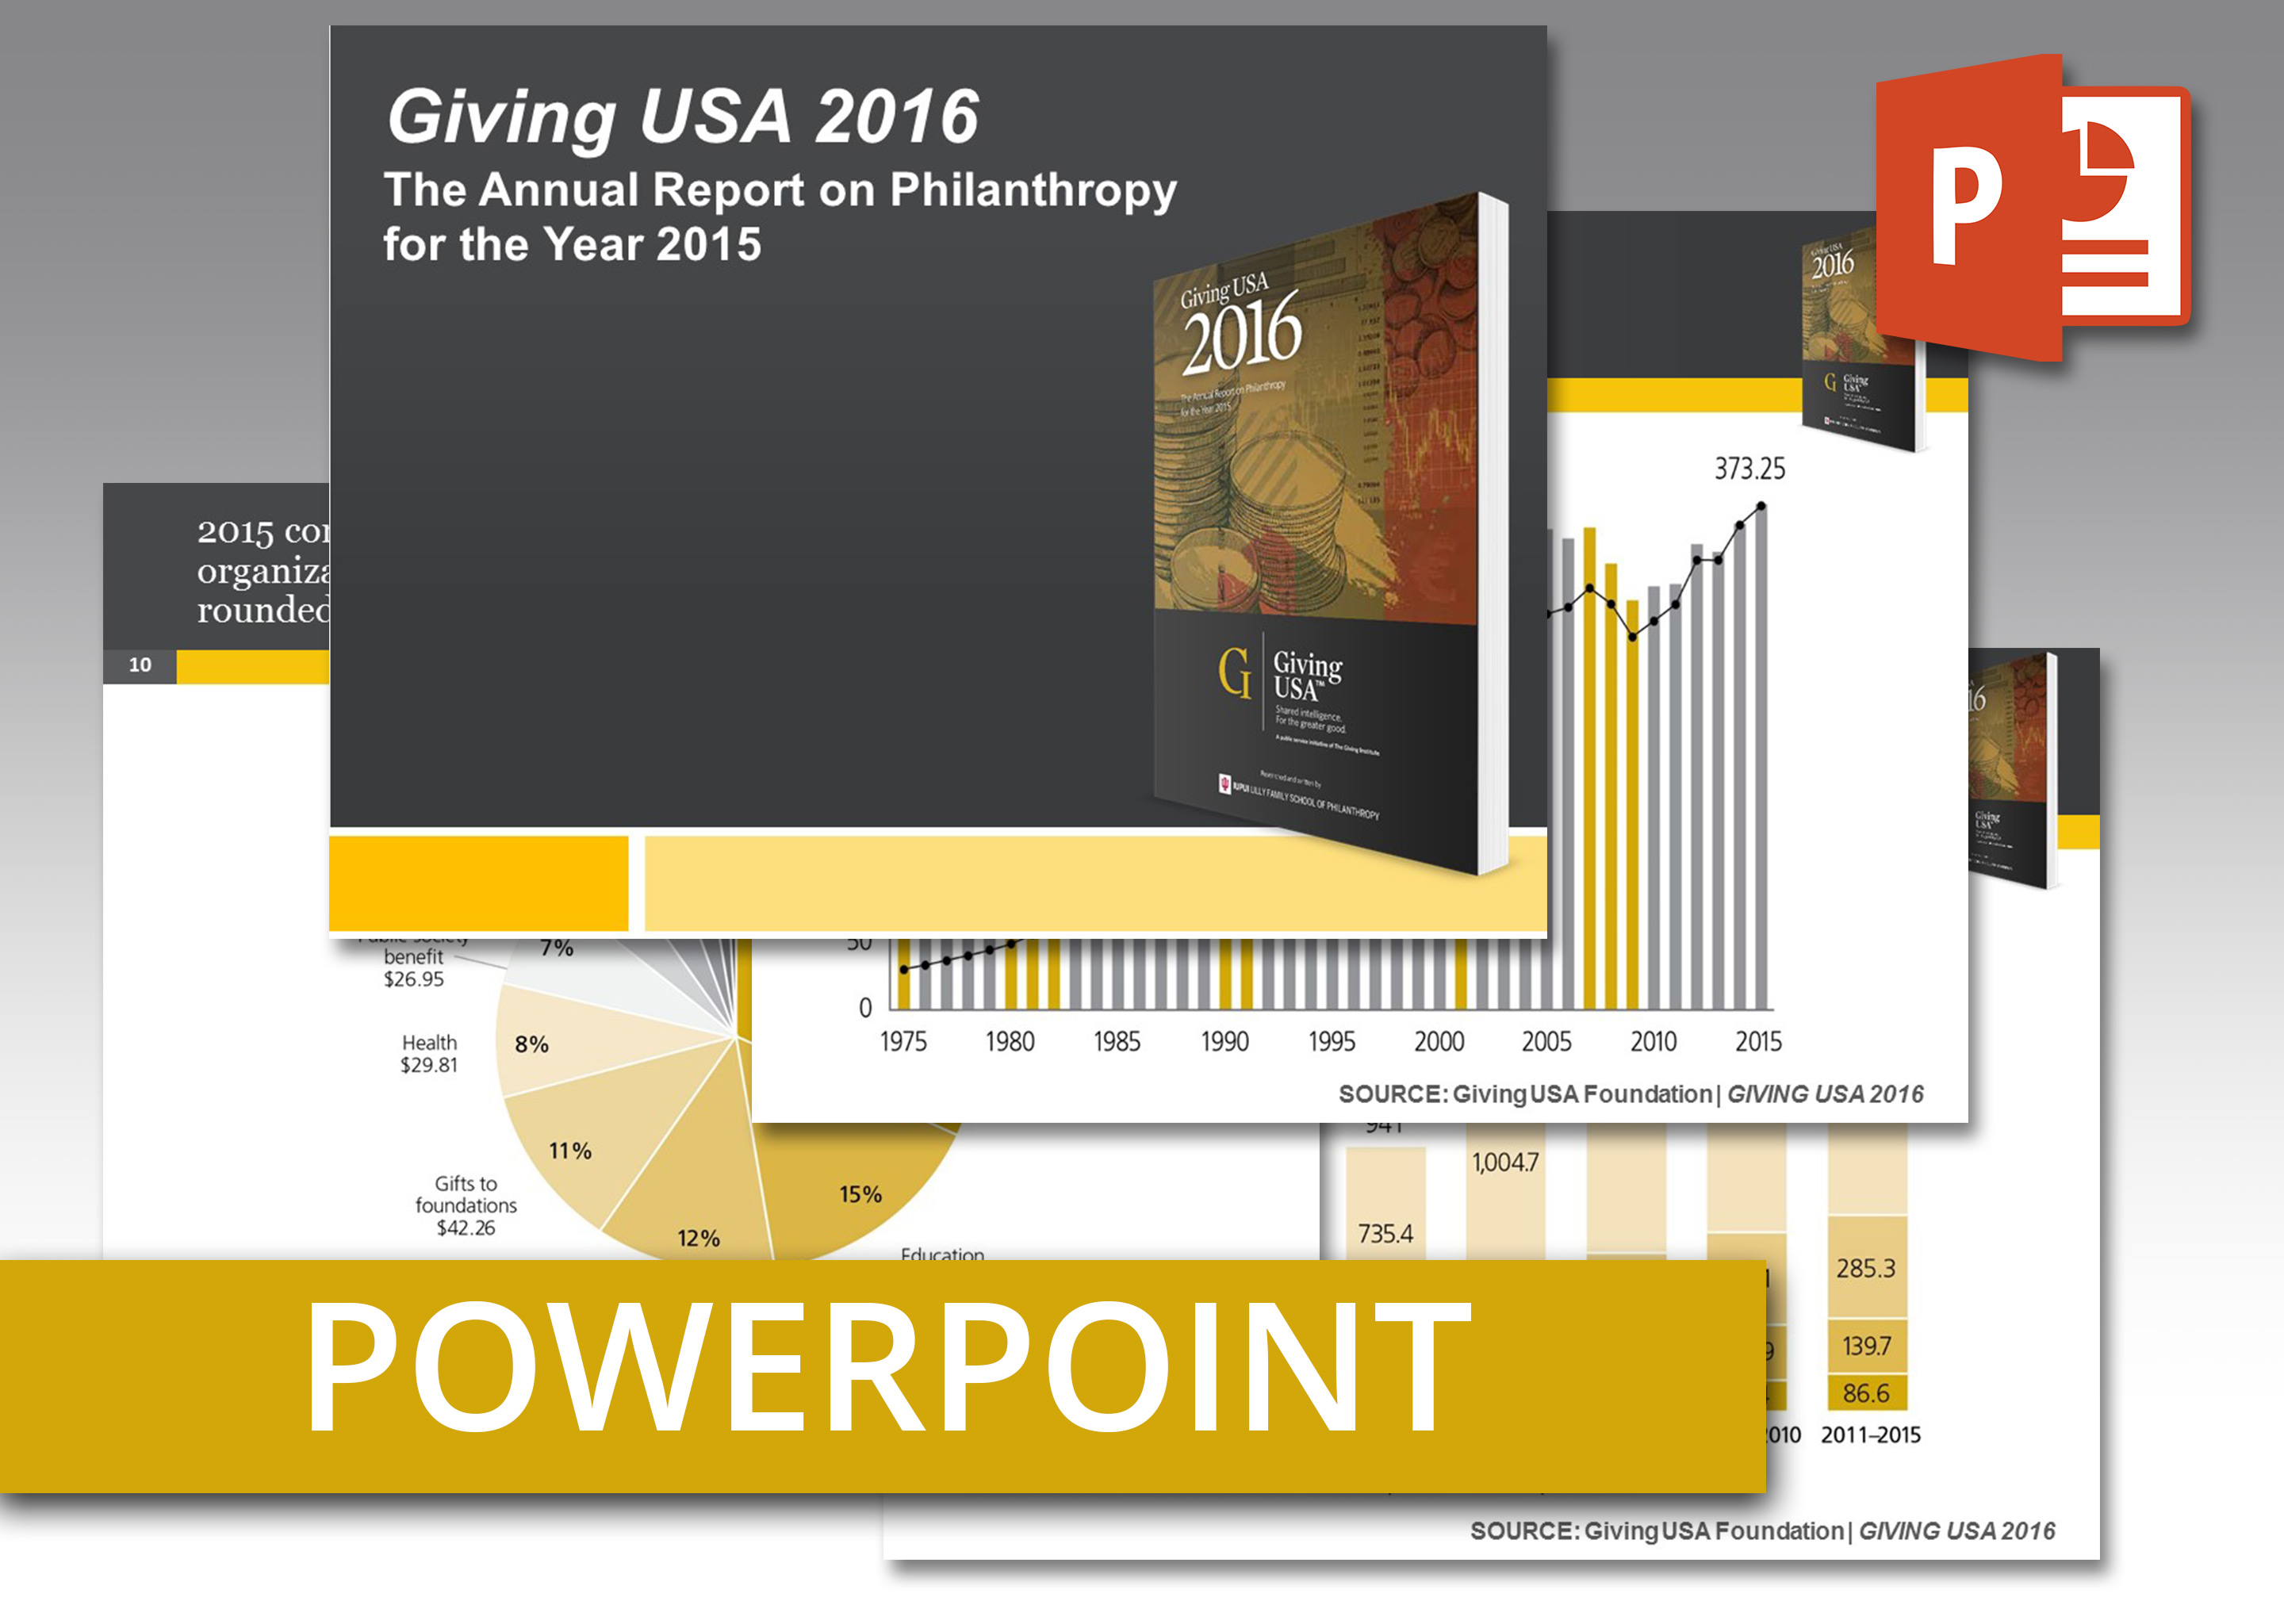 Usdgus  Pleasing Giving Usa  Powerpoint An Easytouse Presentation Of Report  With Magnificent Giving Usa  Powerpoint An Easytouse Presentation Of Report Findings Including Talking Points With Astonishing Blue Powerpoint Backgrounds Also Creating An Org Chart In Powerpoint In Addition Airplane Powerpoint Template And Motivation Powerpoint As Well As Calendar Powerpoint Template Additionally How To Download Powerpoint Themes From Givingusaorg With Usdgus  Magnificent Giving Usa  Powerpoint An Easytouse Presentation Of Report  With Astonishing Giving Usa  Powerpoint An Easytouse Presentation Of Report Findings Including Talking Points And Pleasing Blue Powerpoint Backgrounds Also Creating An Org Chart In Powerpoint In Addition Airplane Powerpoint Template From Givingusaorg